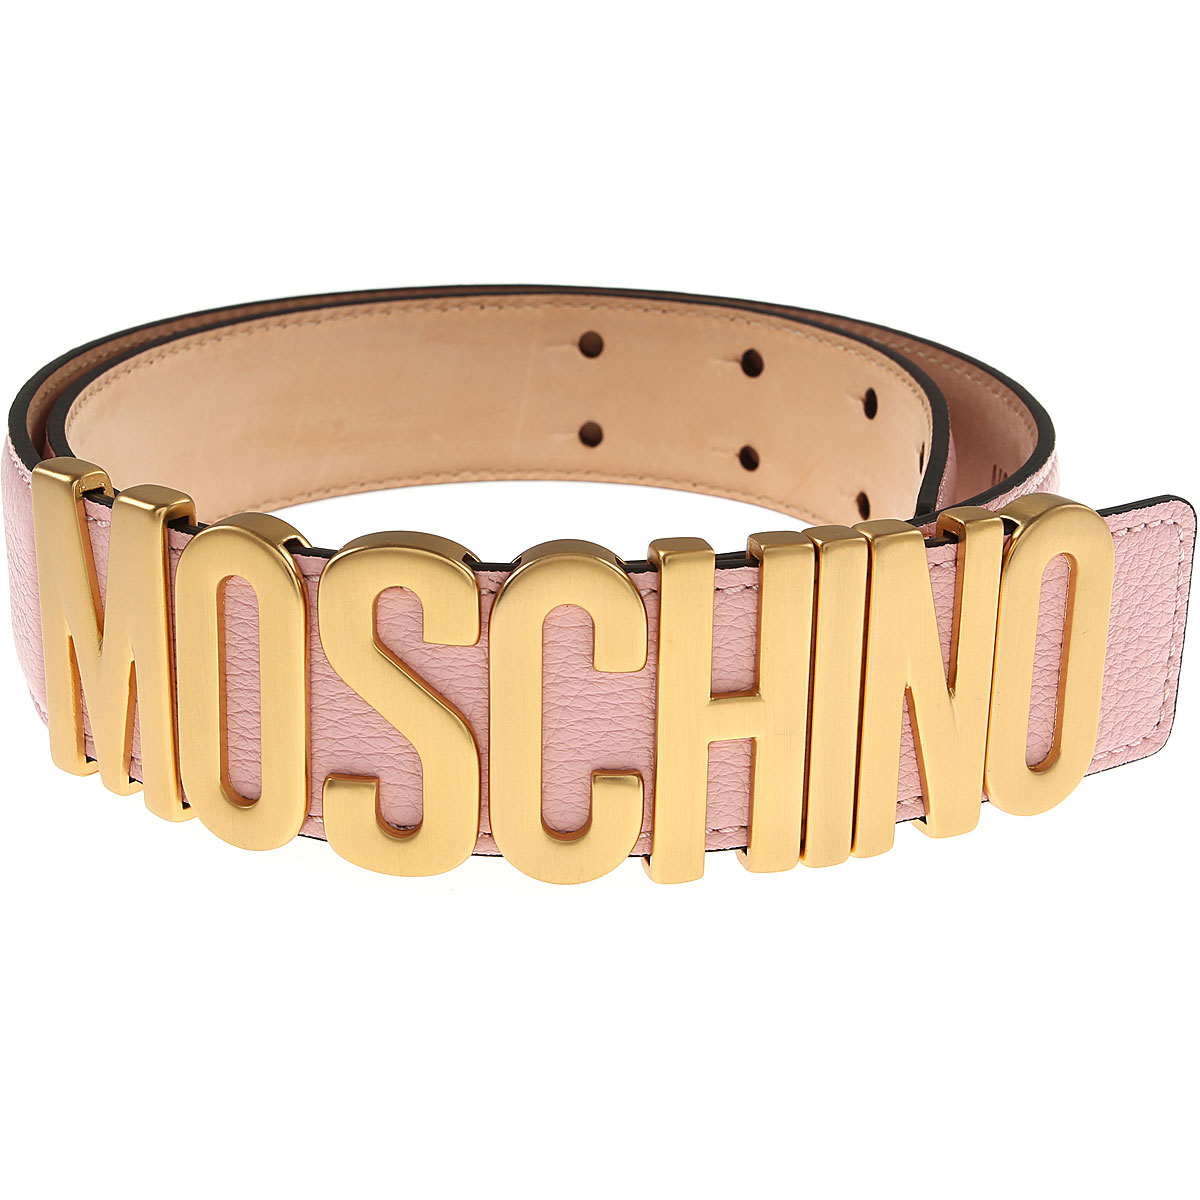 Moschino Womens Belts, Pink, Leather, 2017, 38 inches - 95 cm 40 inches - 100 cm 42 inches - 105 cm Eu - 38 Eu - 40 EU - 42